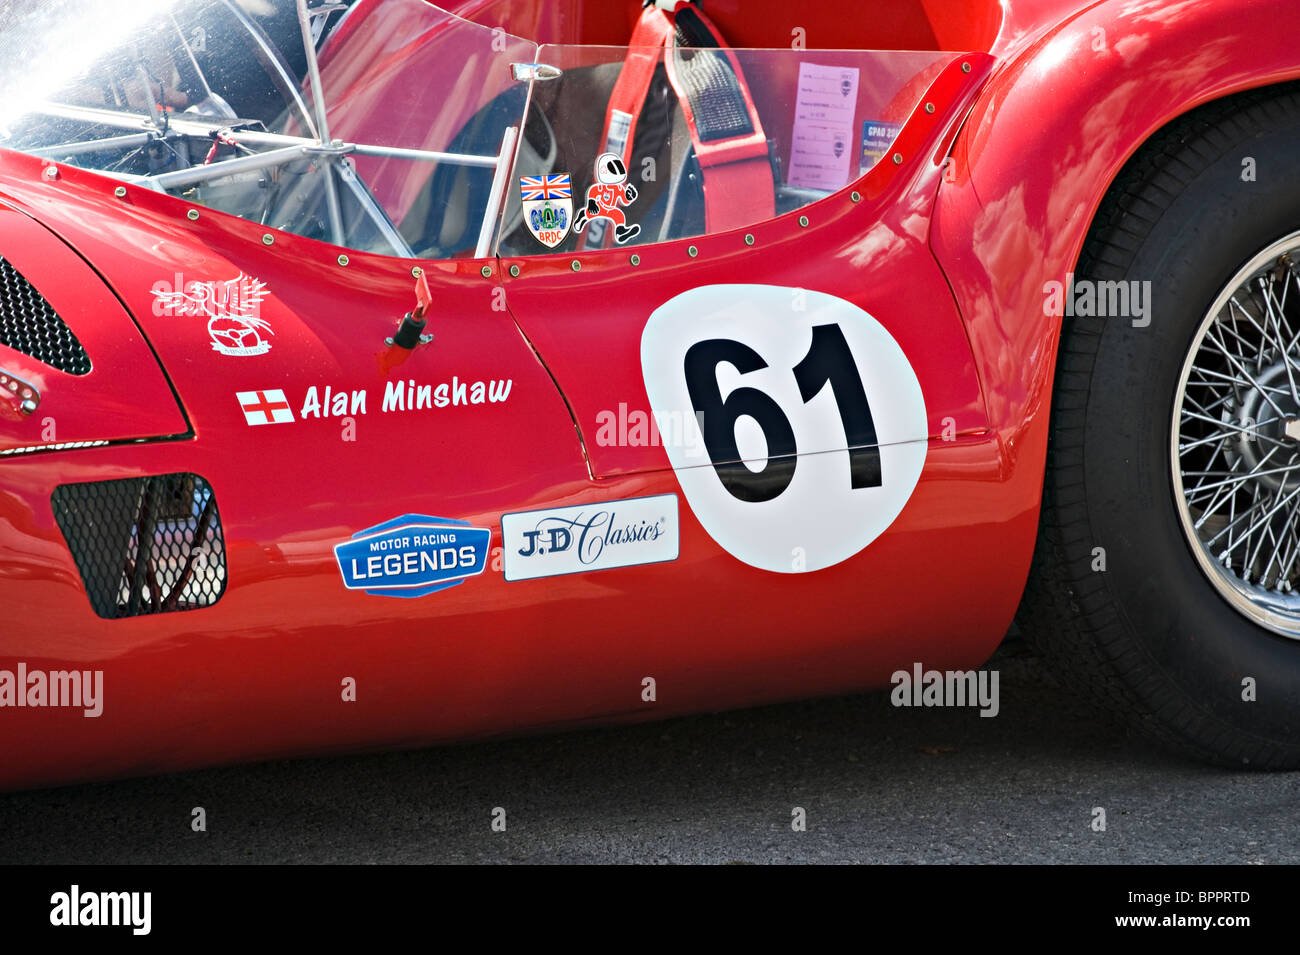 Closeup of Red Maserati T61 Birdcage at Oulton Park Motor Racing Circuit Cheshire England United Kingdom UK - Stock Image